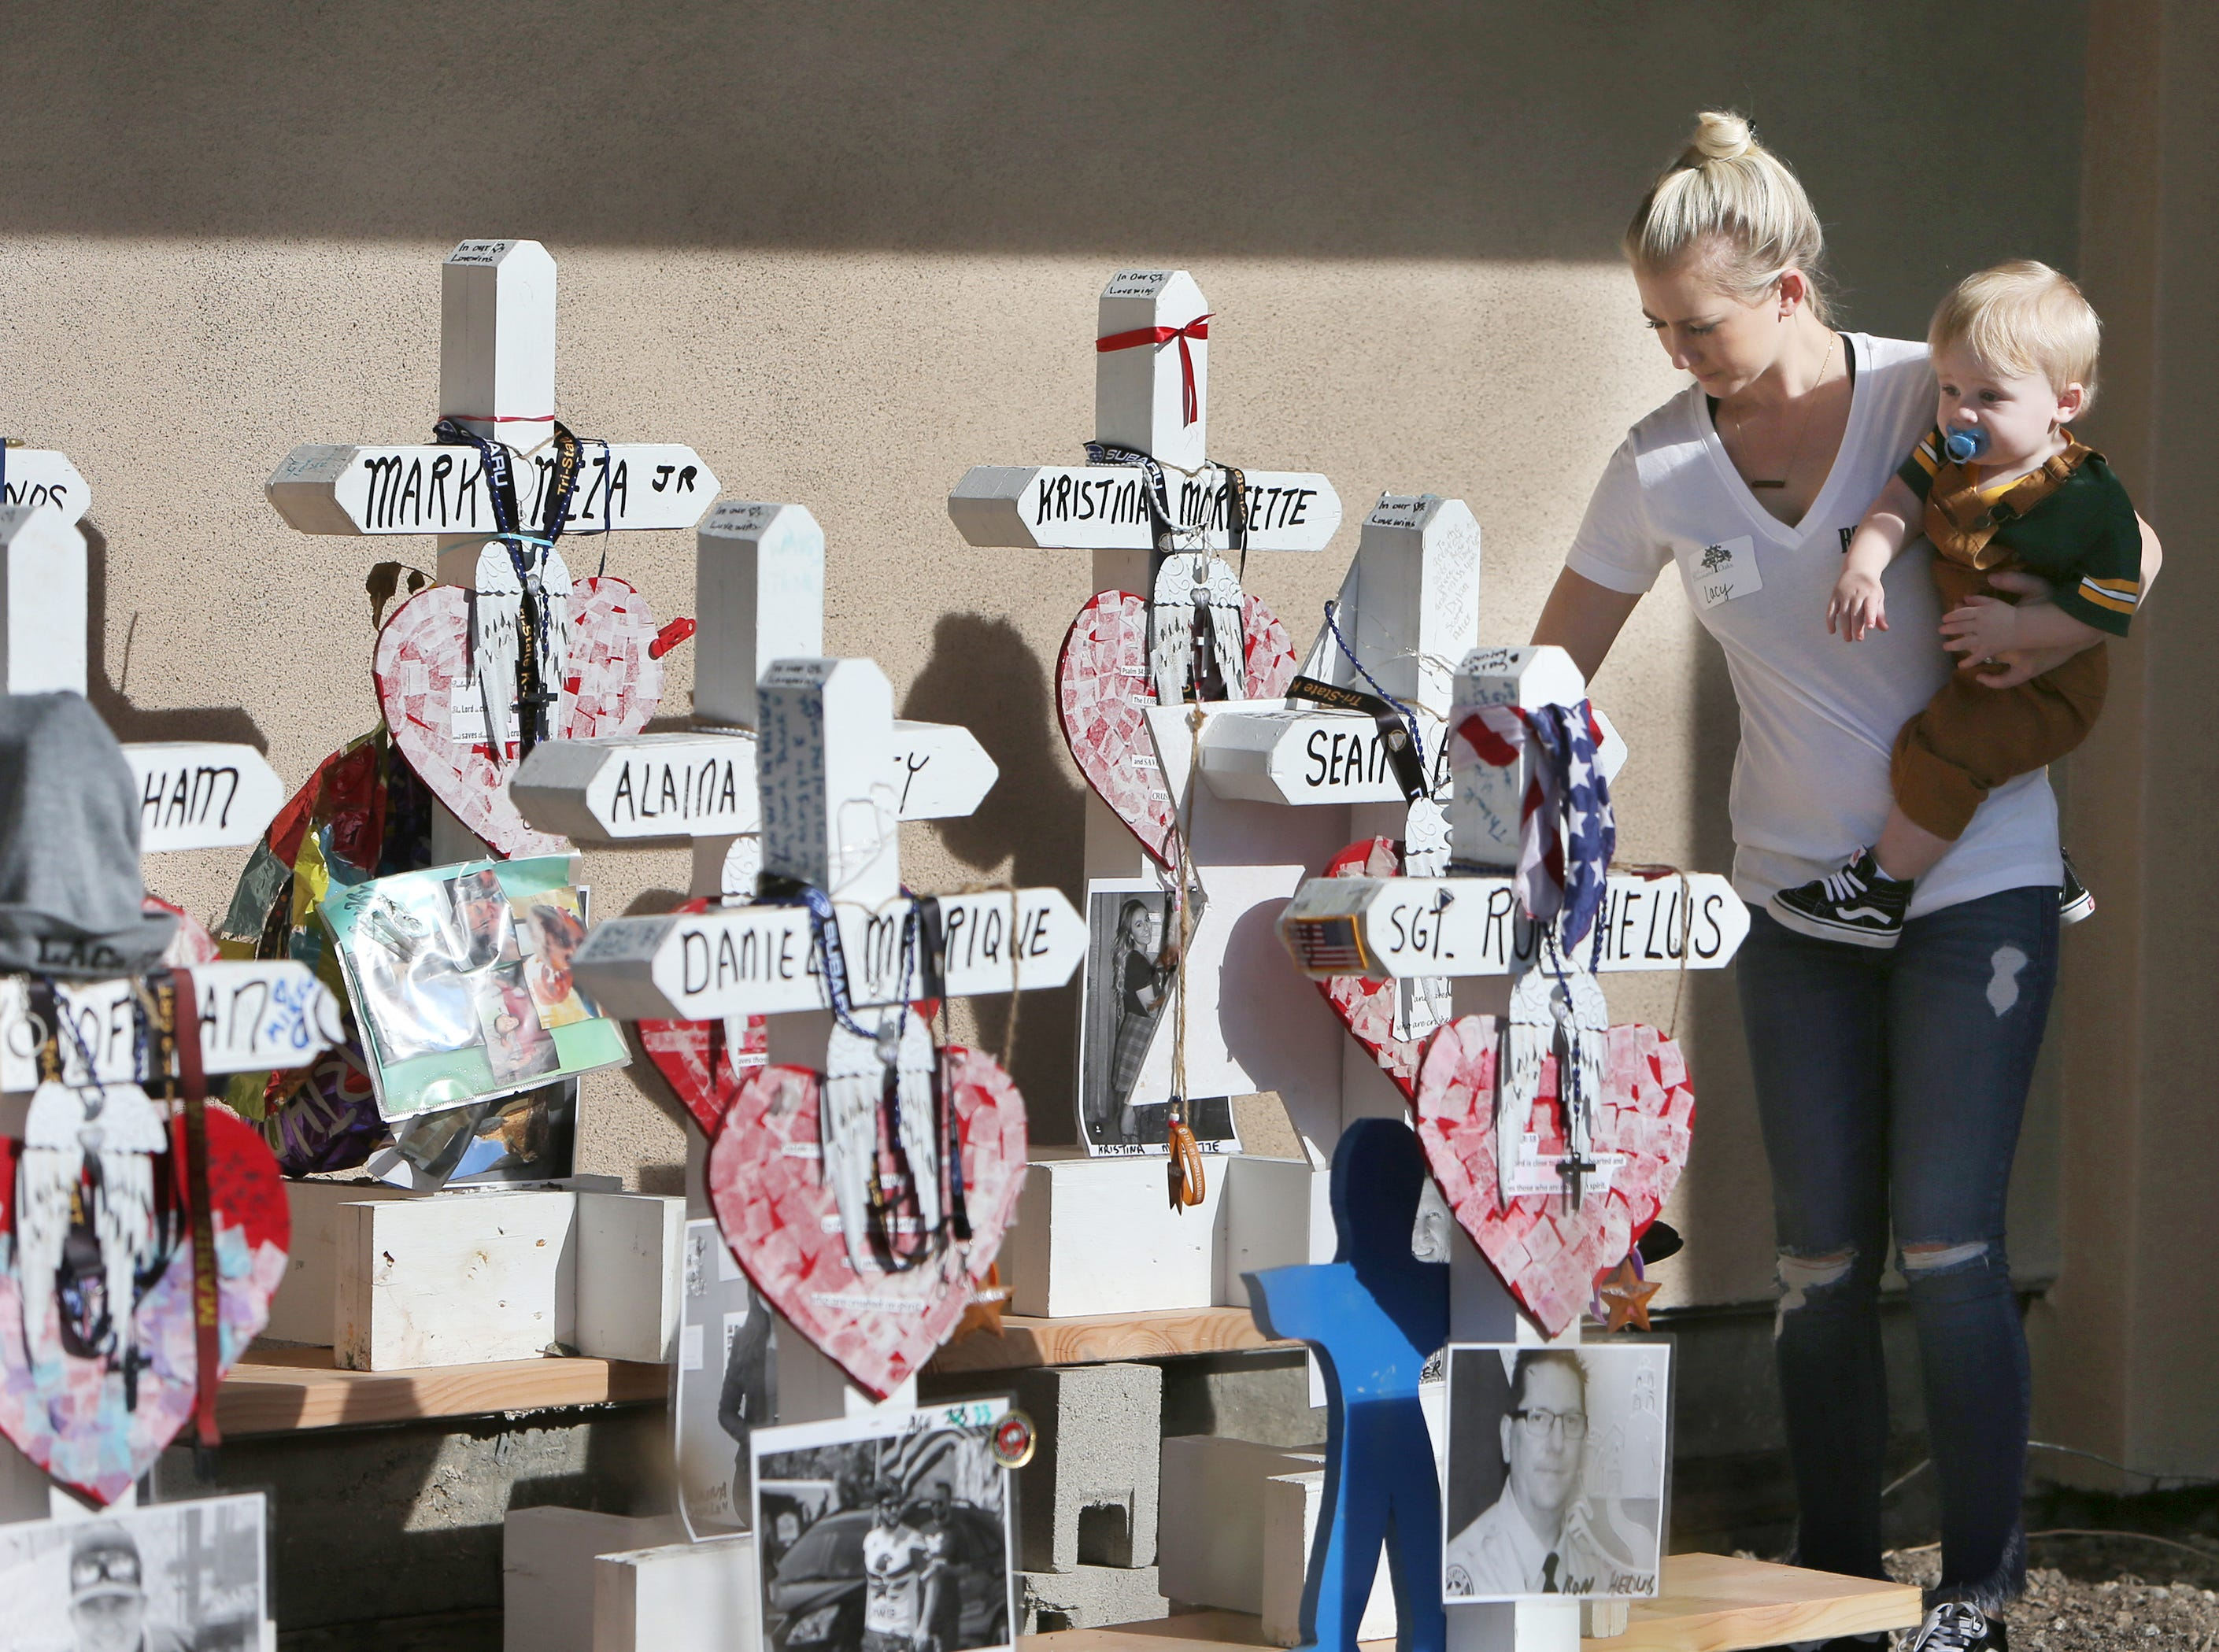 Memorial to Borderline victims moved from street corner to nearby site of mass shooting